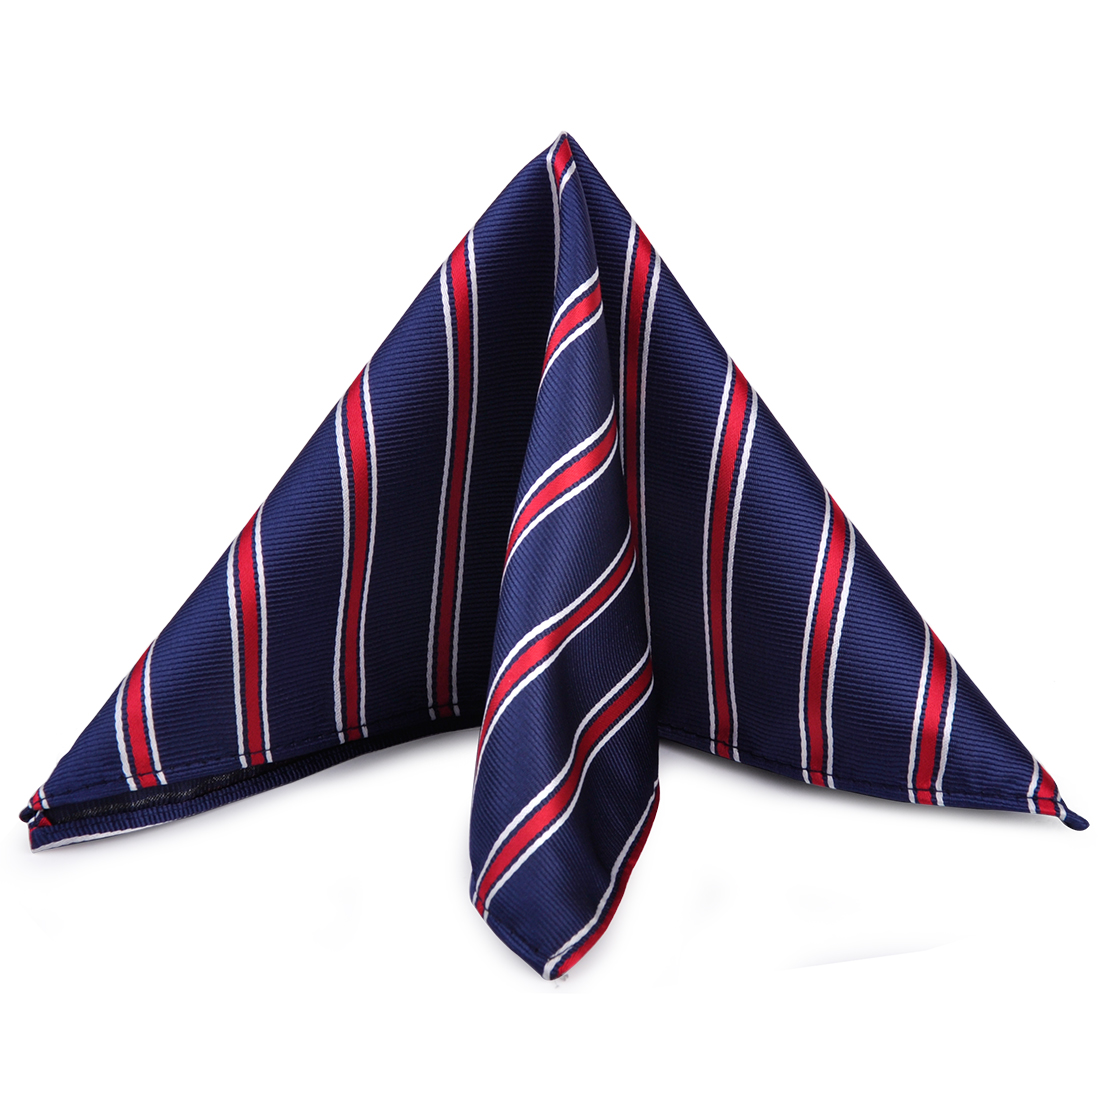 CiciTree Men's Striped Suit Pocket Square Silk Polyester Fashion Men Handkerchief Hanky For Bussiness Wedding Boys Father's Day